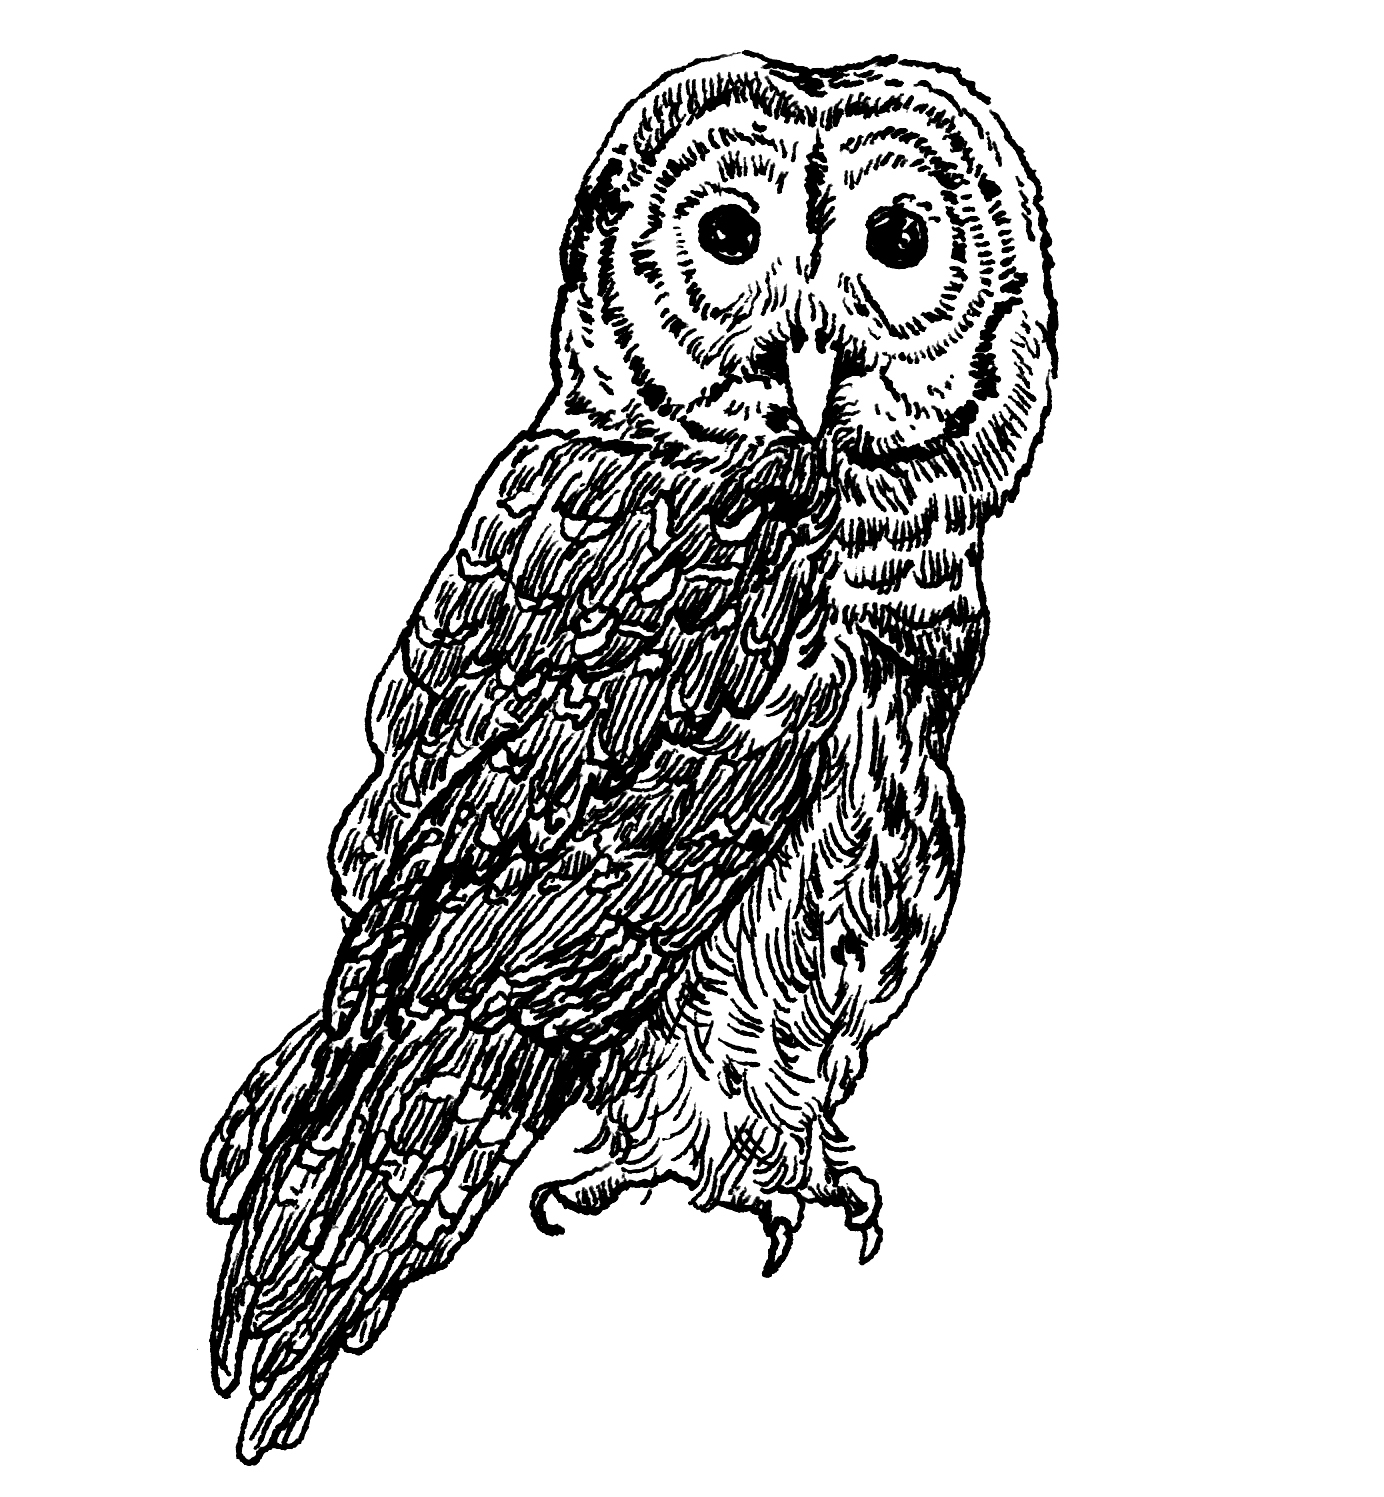 Owl at night black and white clipart vector royalty free library The Barred Owl | Audubon vector royalty free library